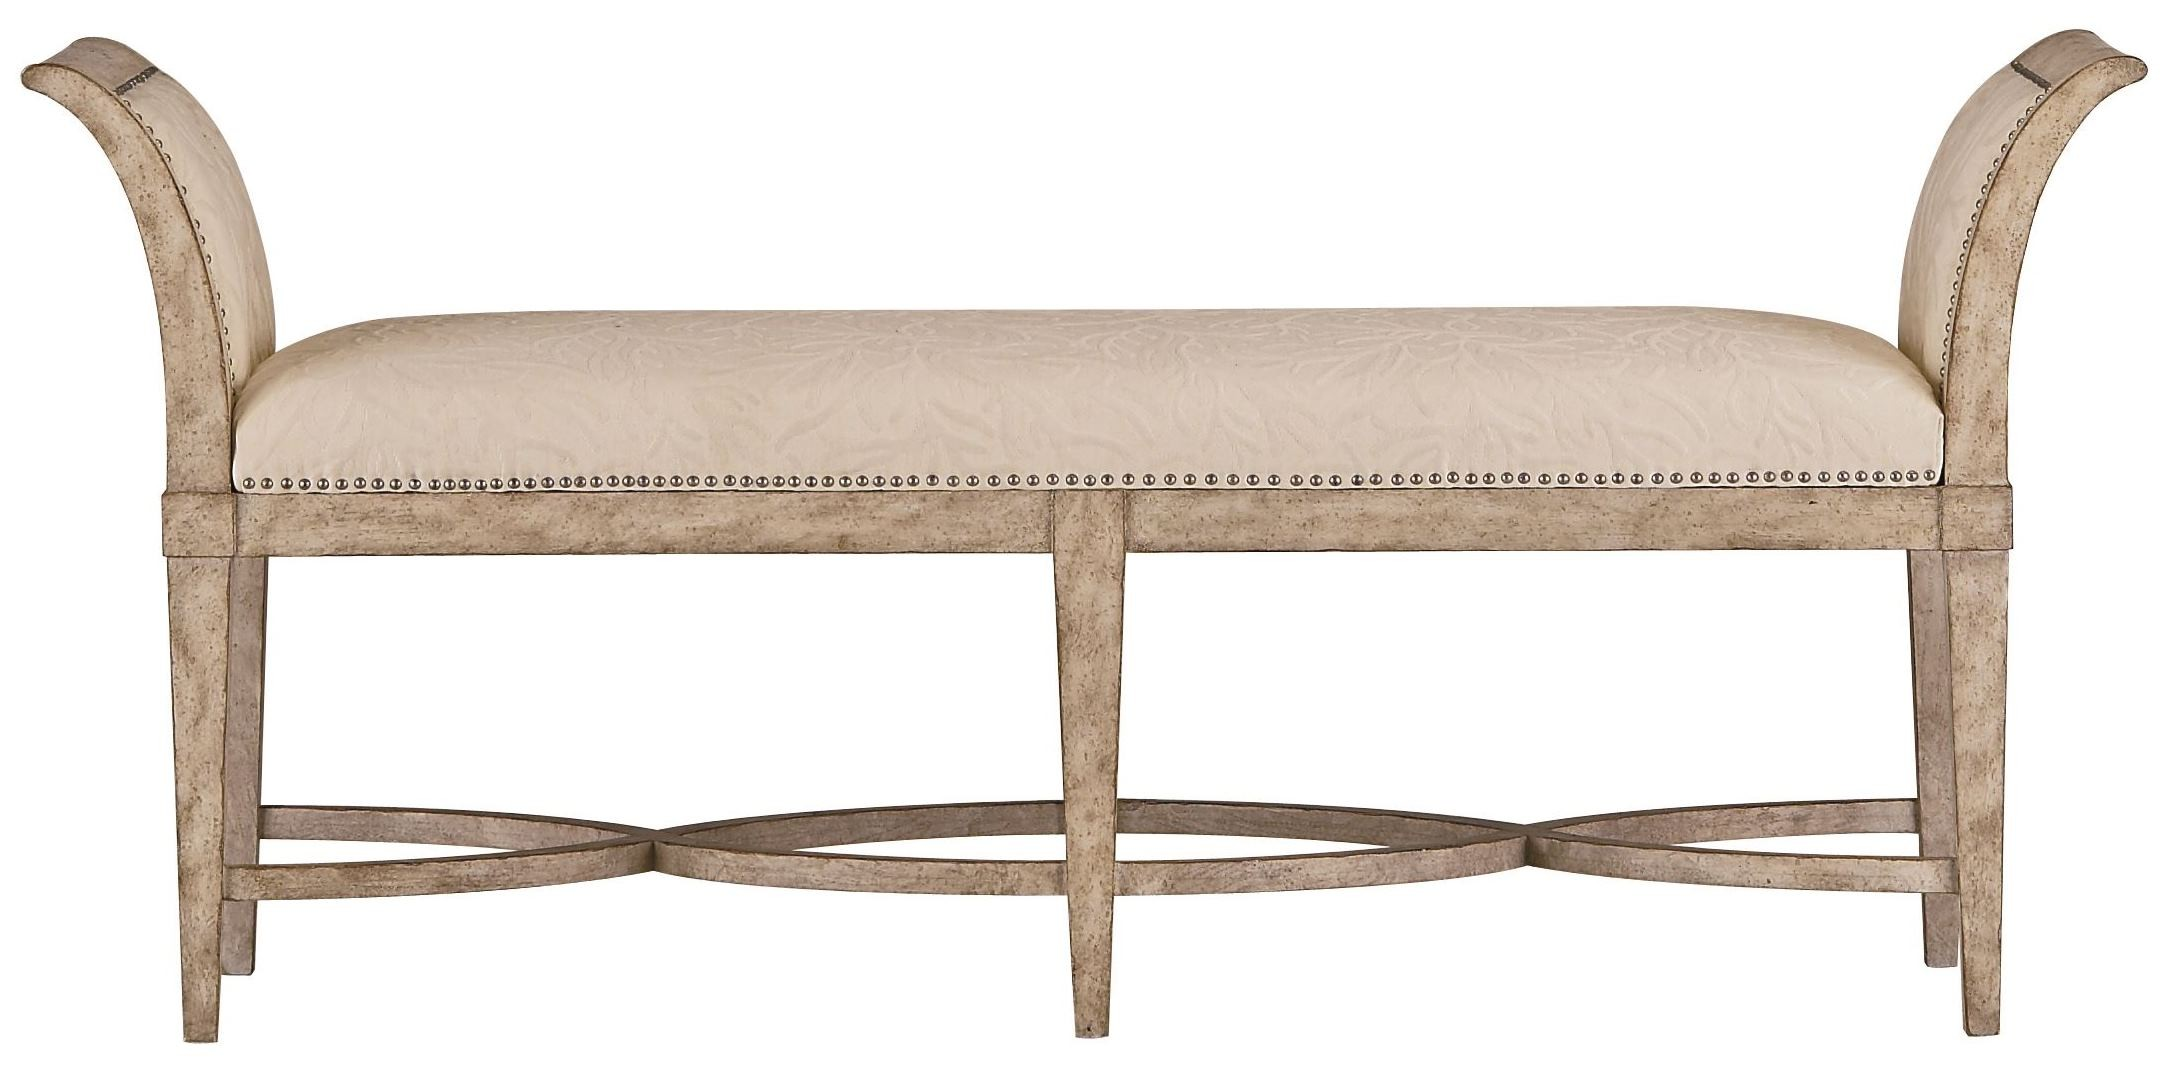 chairs for the end of your bed replacement patio chair cushions canada coastal living resort sandy linen surfside bench